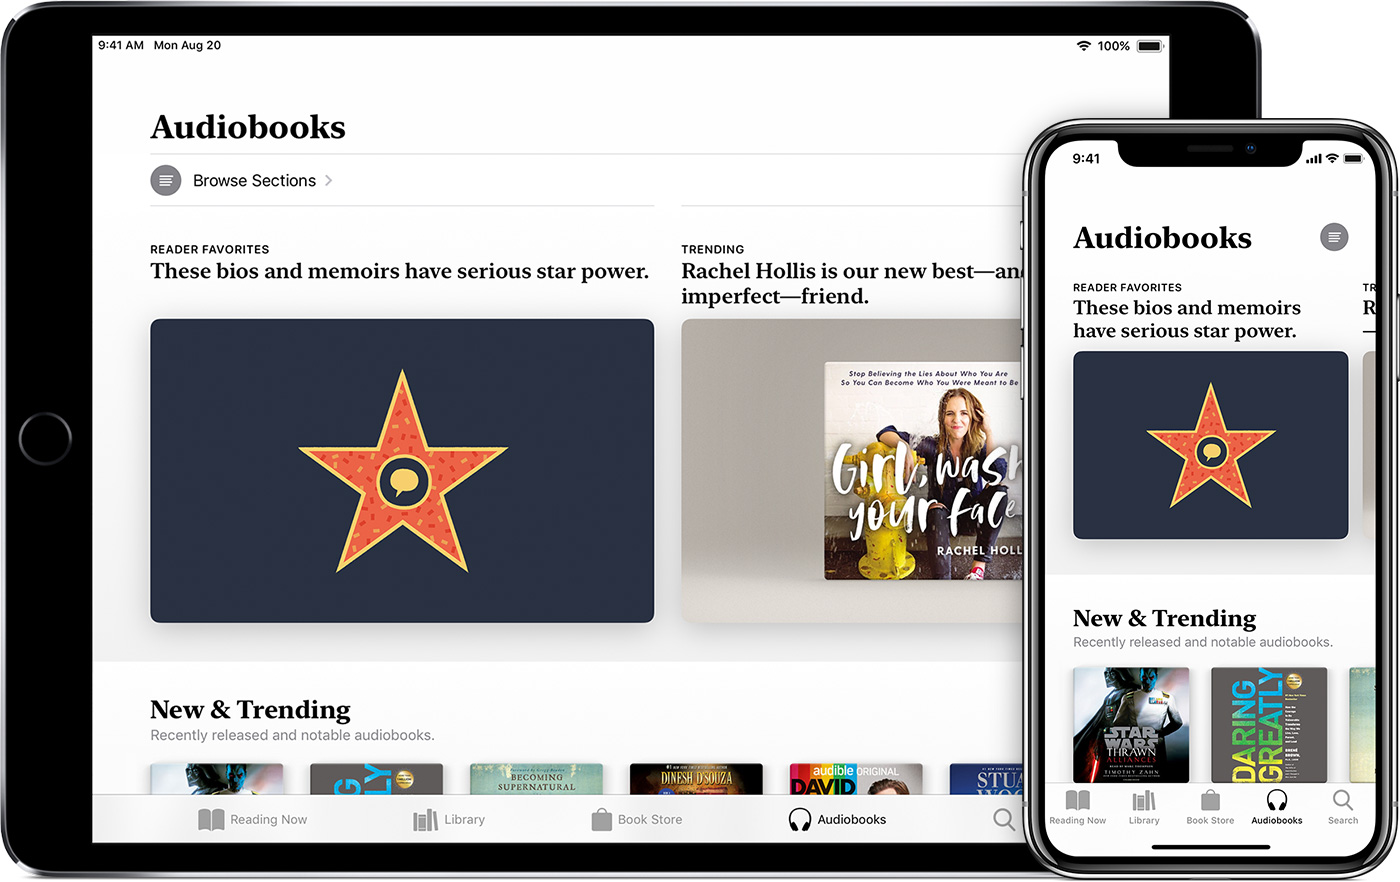 iPad and iPhone showing the Audiobooks tab in Apple Books